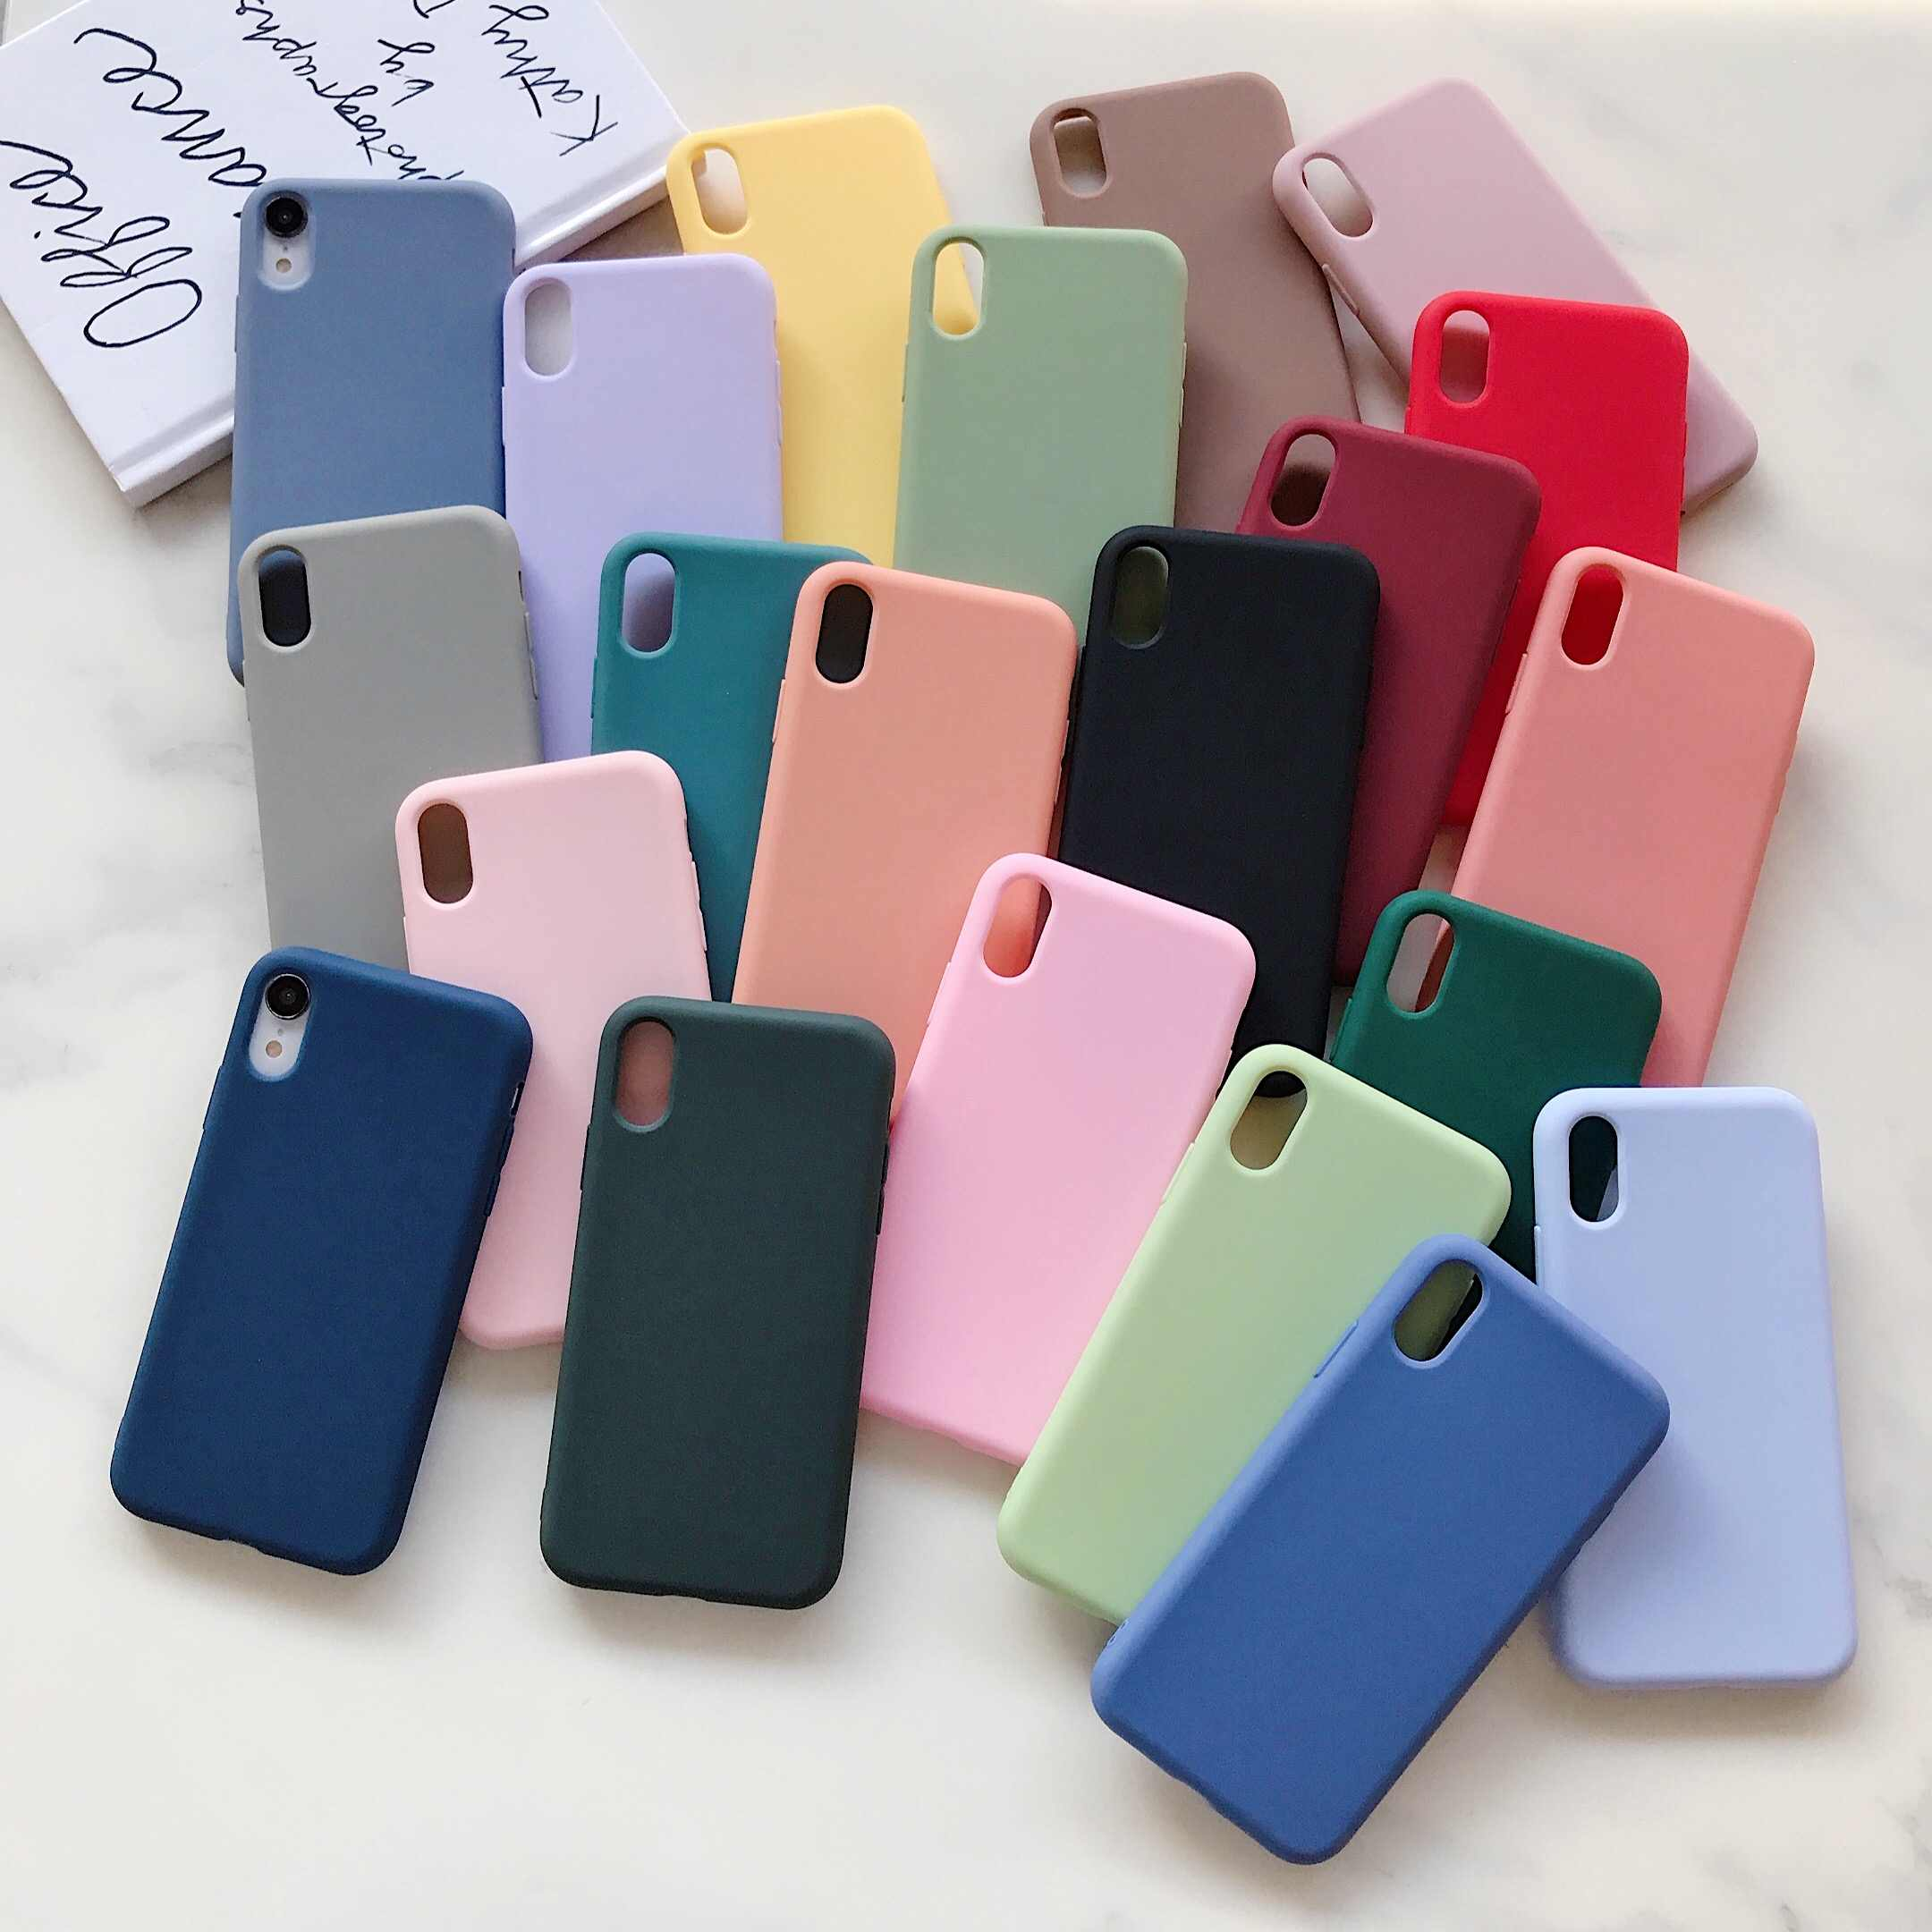 Voor iPhone 7 Case Candy Effen Kleur Zacht 1.5mm Siliconen Cover voor iPhone X 11 Pro Max XR Case 6 6S 7 8 Plus 6 XS MAX Coque